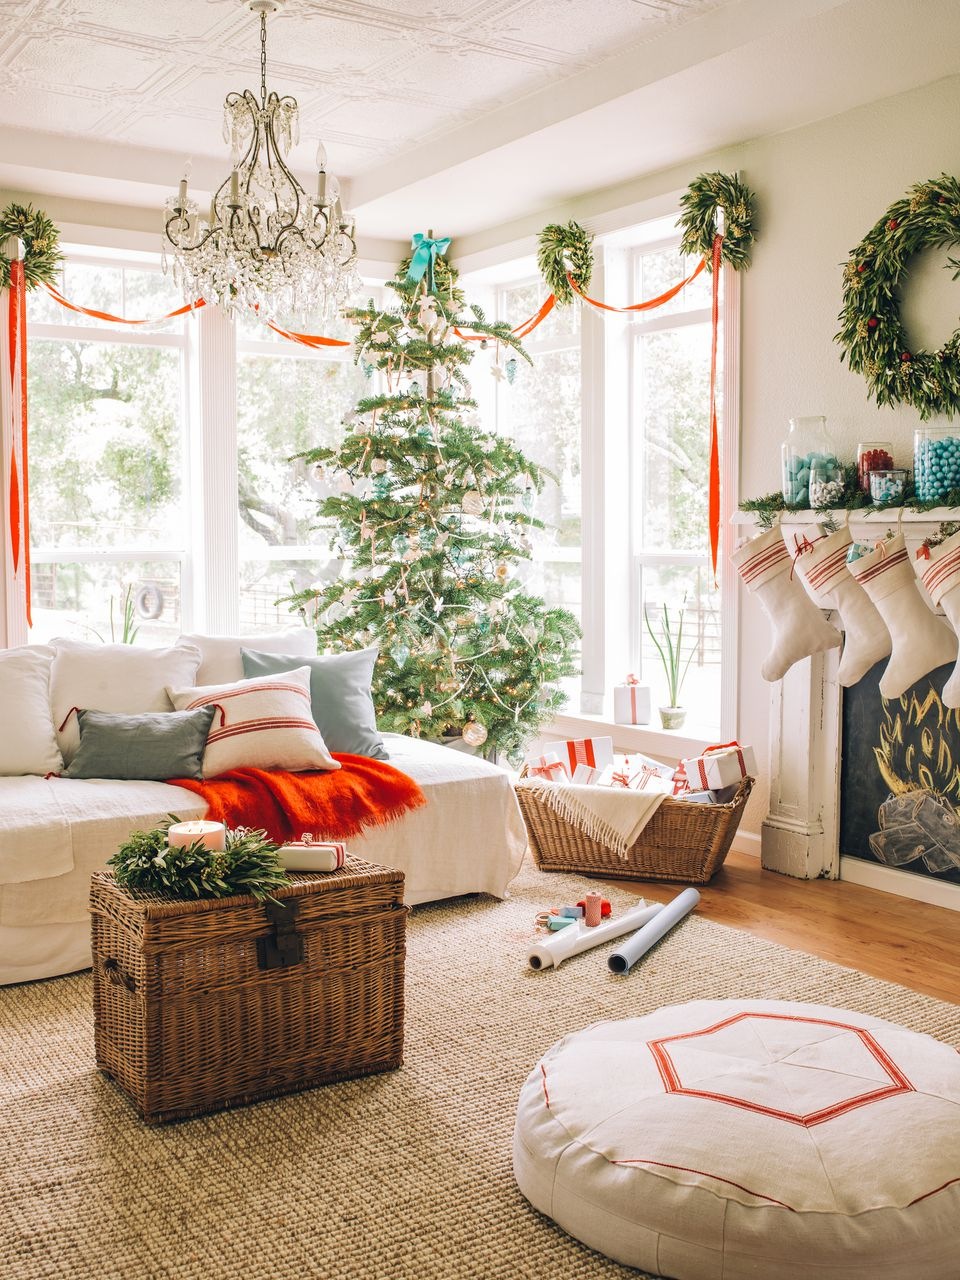 Decorate Living Room With One Window: 15 Beautiful Ways To Decorate The Living Room For Christmas